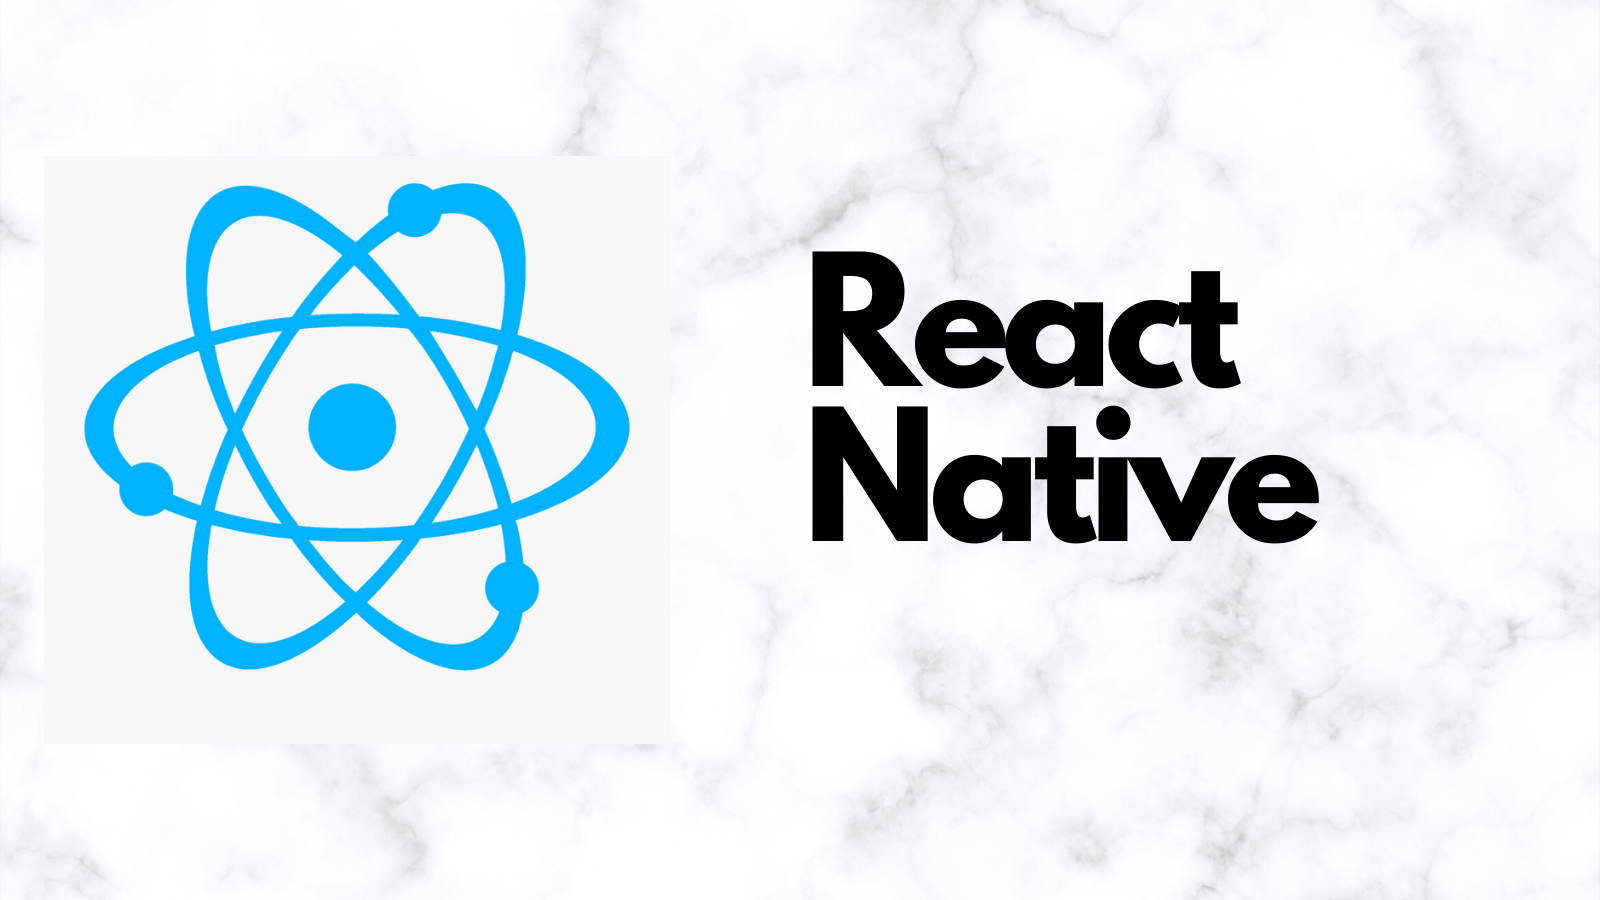 12 Best React Native Tutorials & Courses - Learn React Native Development Online